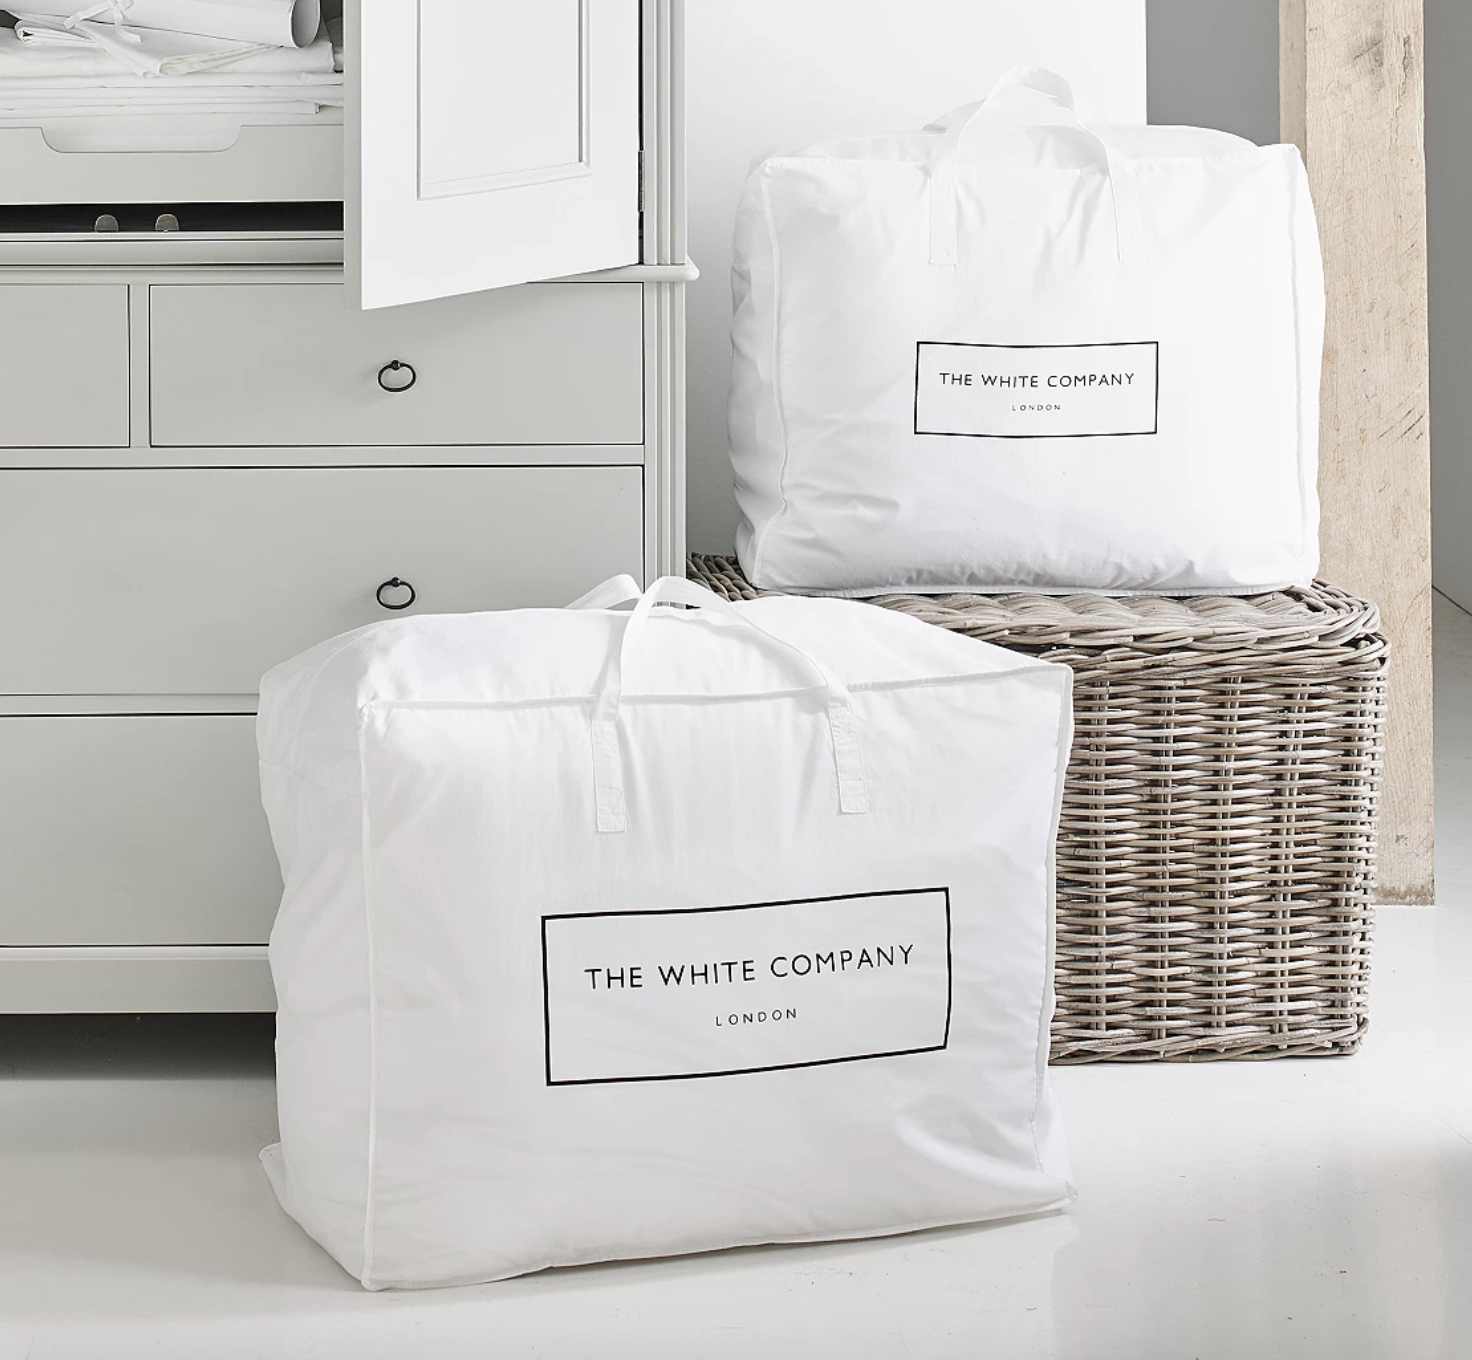 two large cotton storage bags in a laundry room